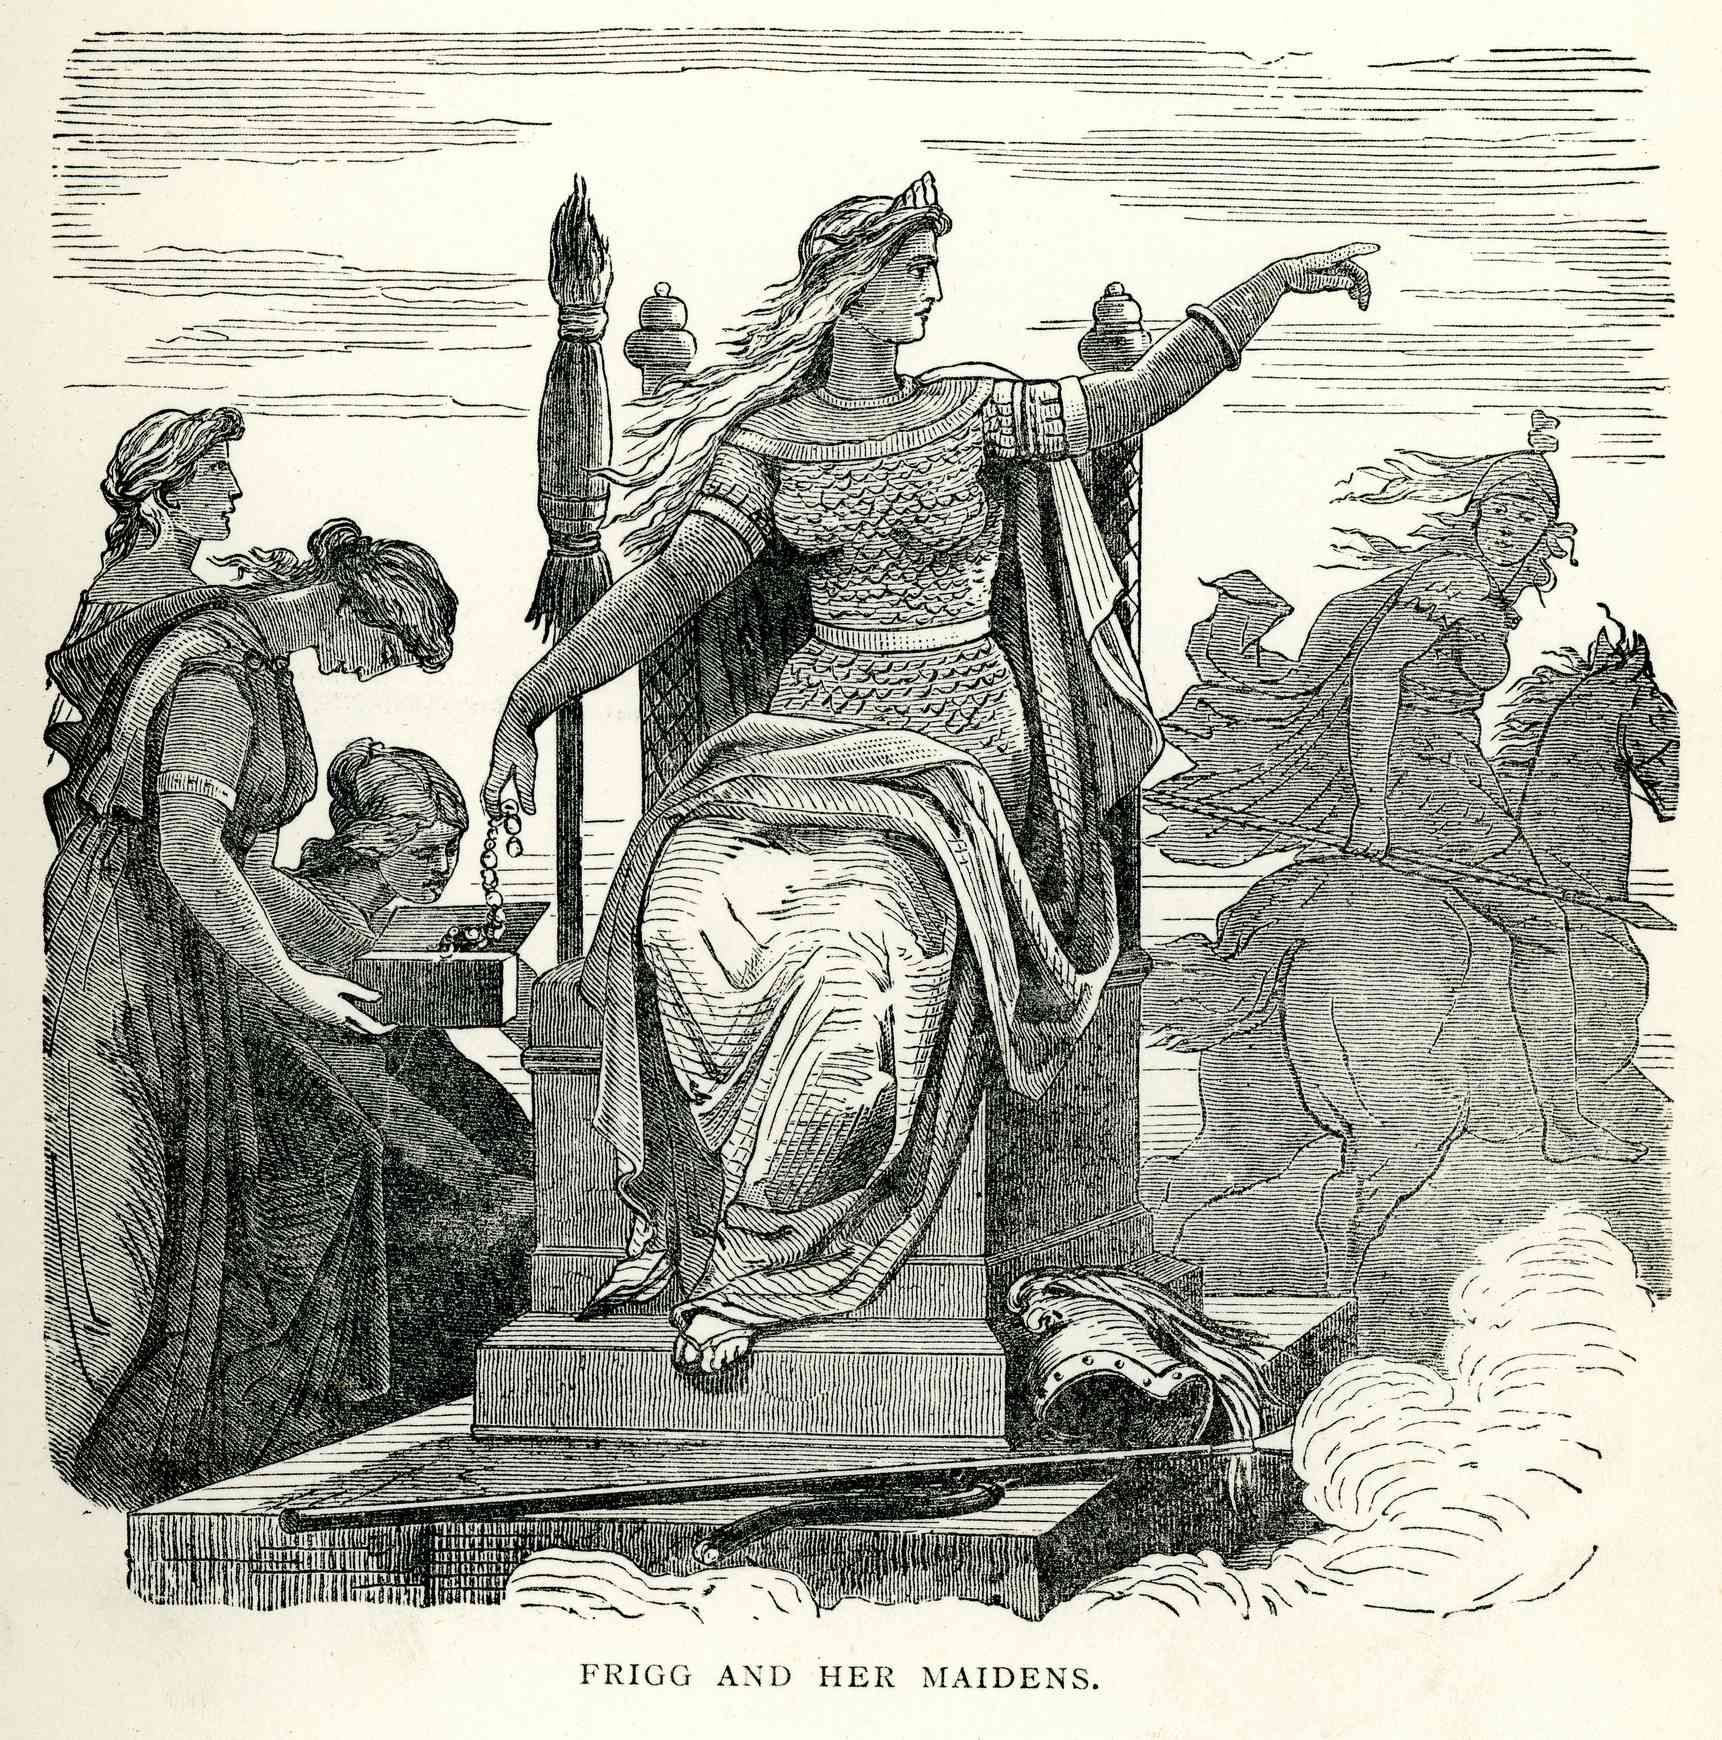 Vintage engraving of the Norse goddess Frigga and her maidens.